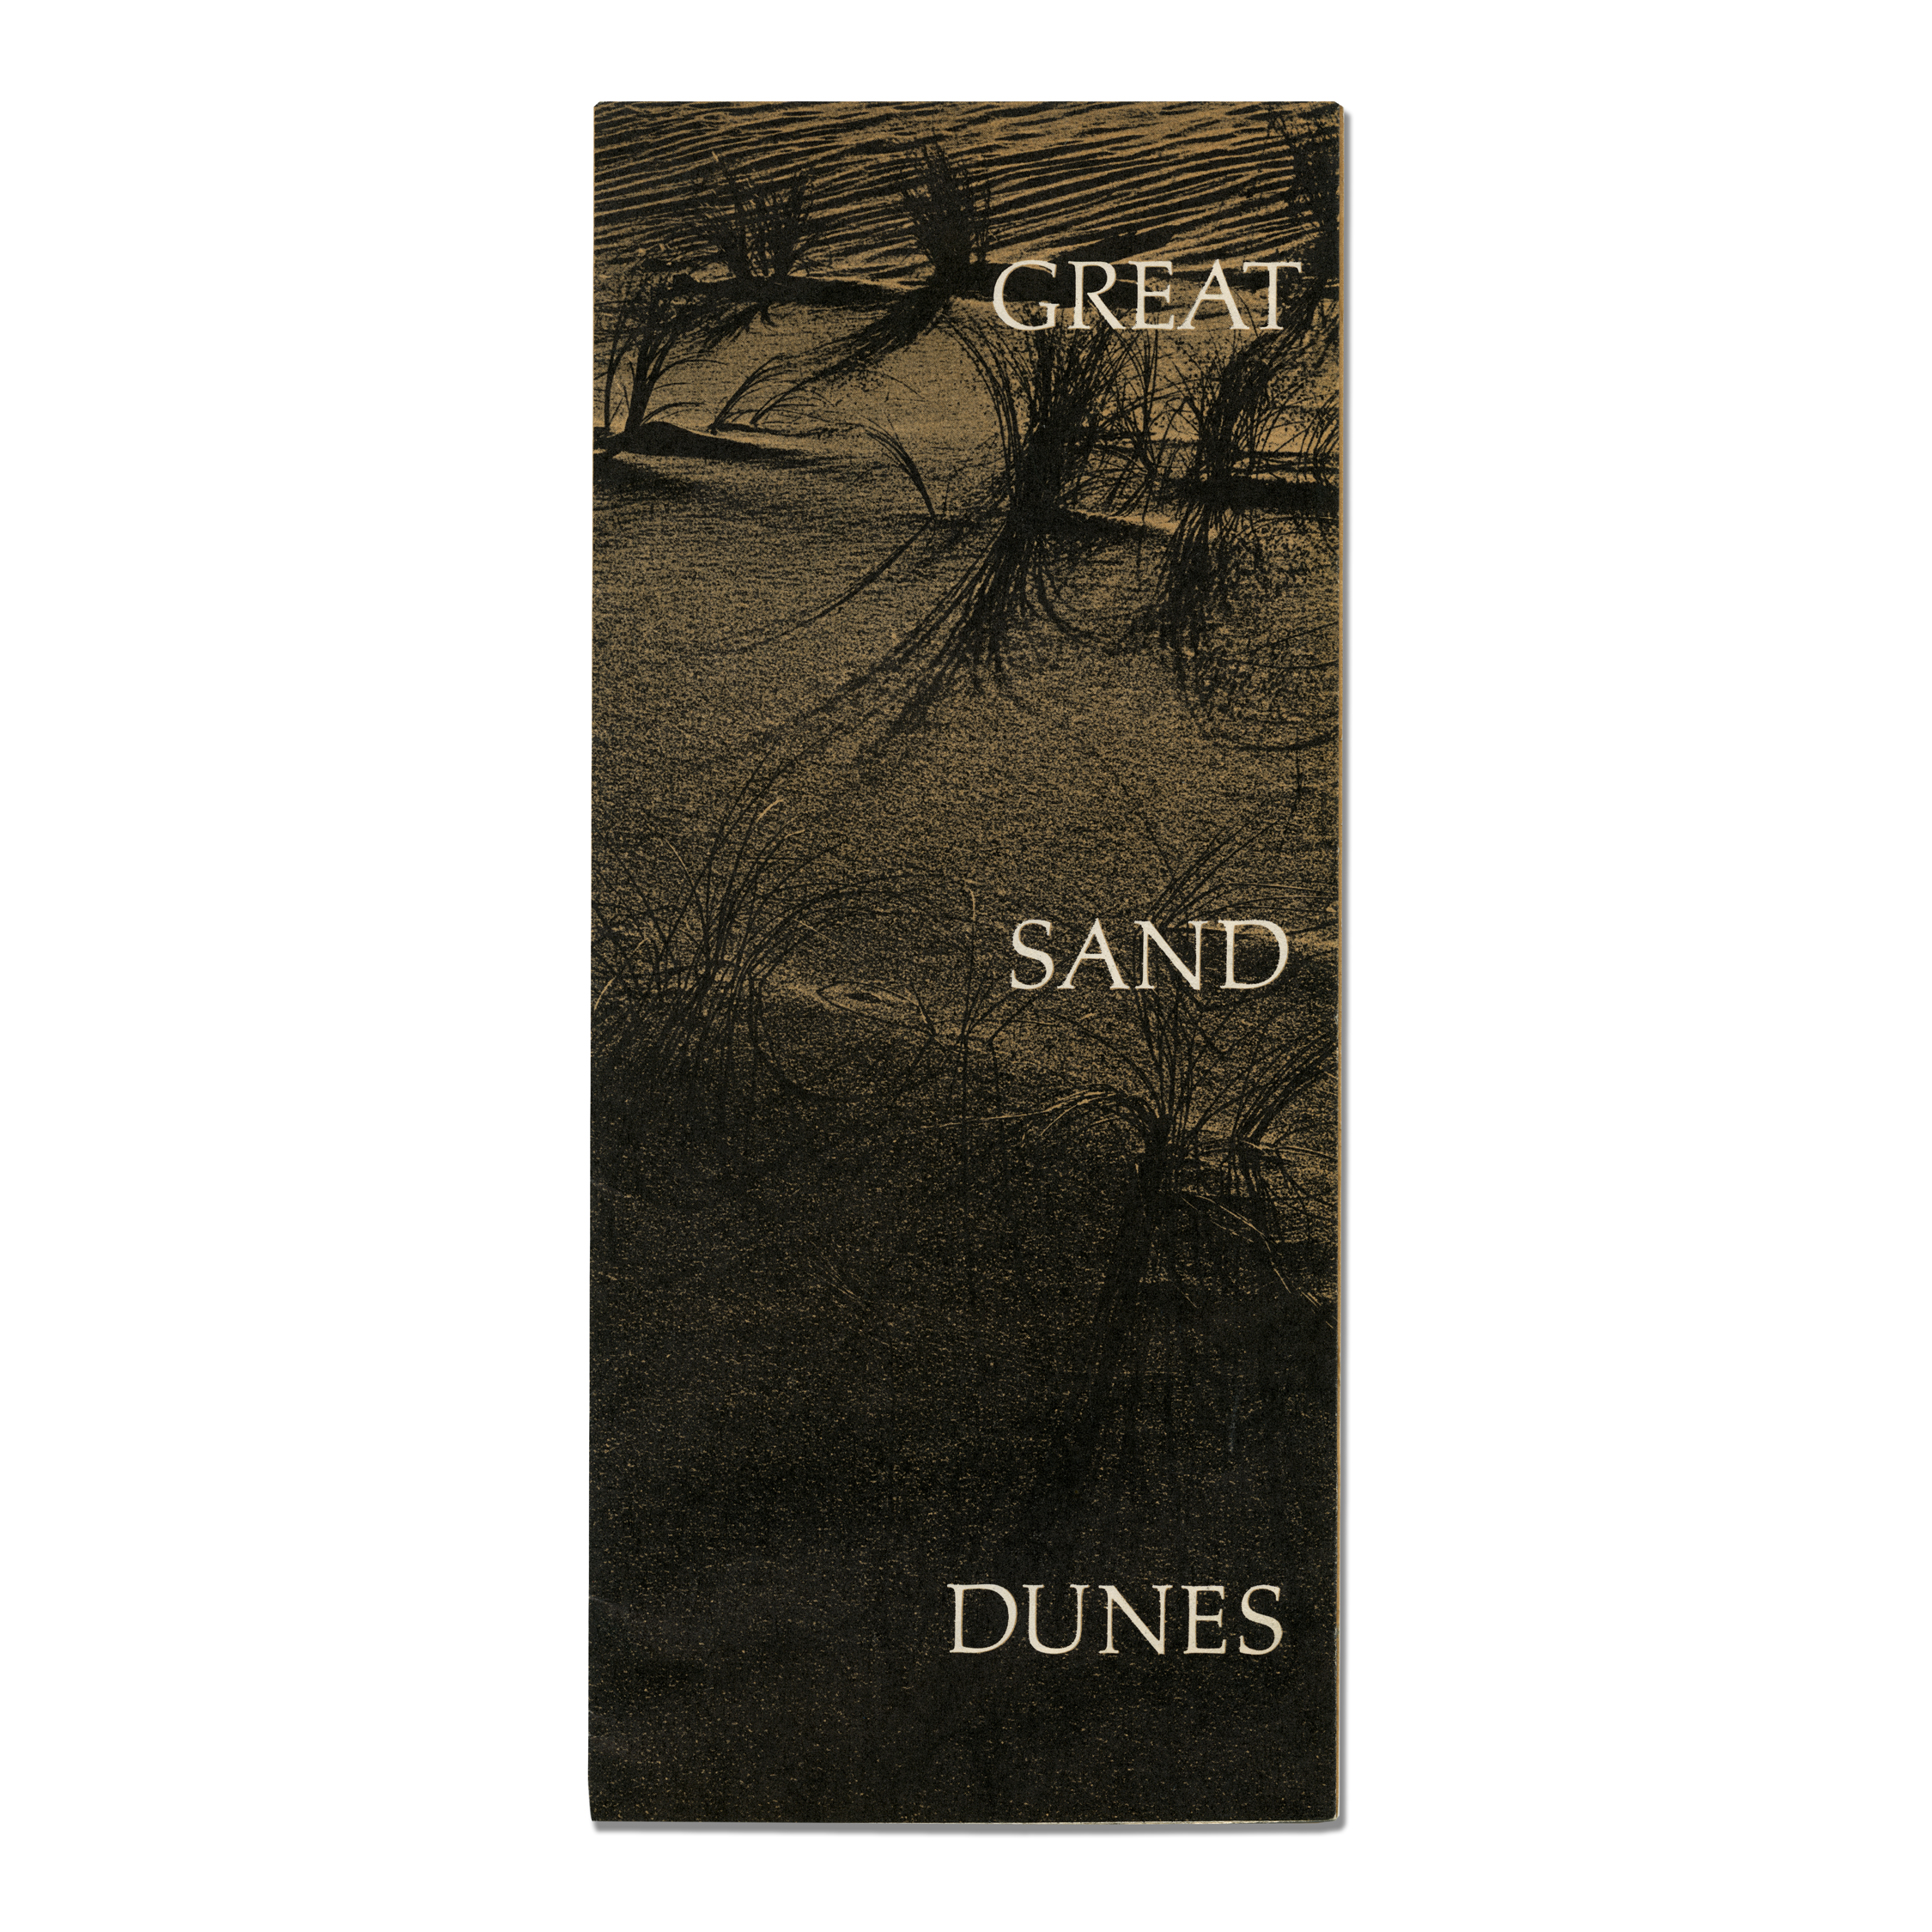 1972_great_sand_dunes_national_monument_brochure.jpg